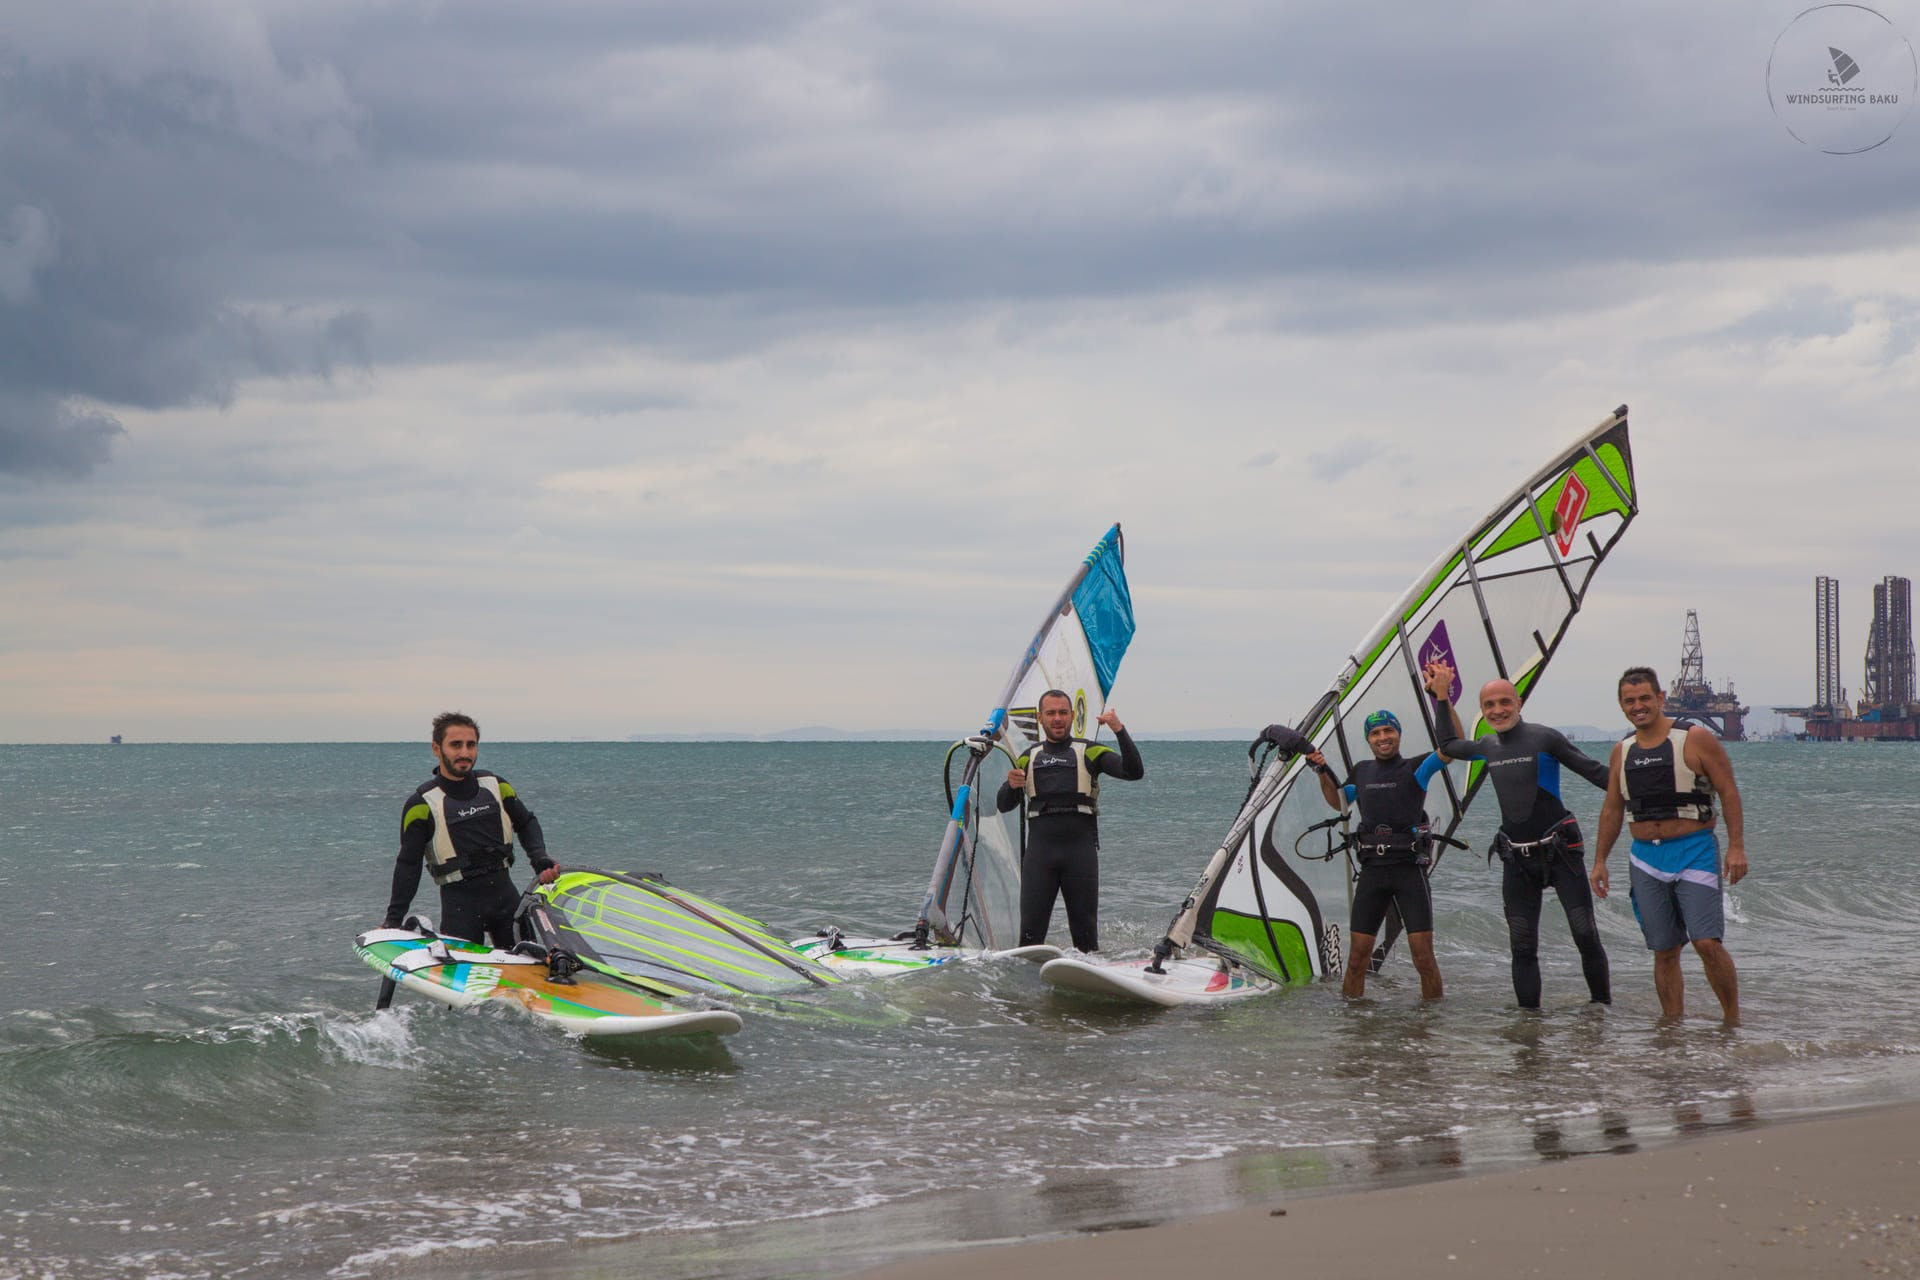 Windsurfing group of professional surfers